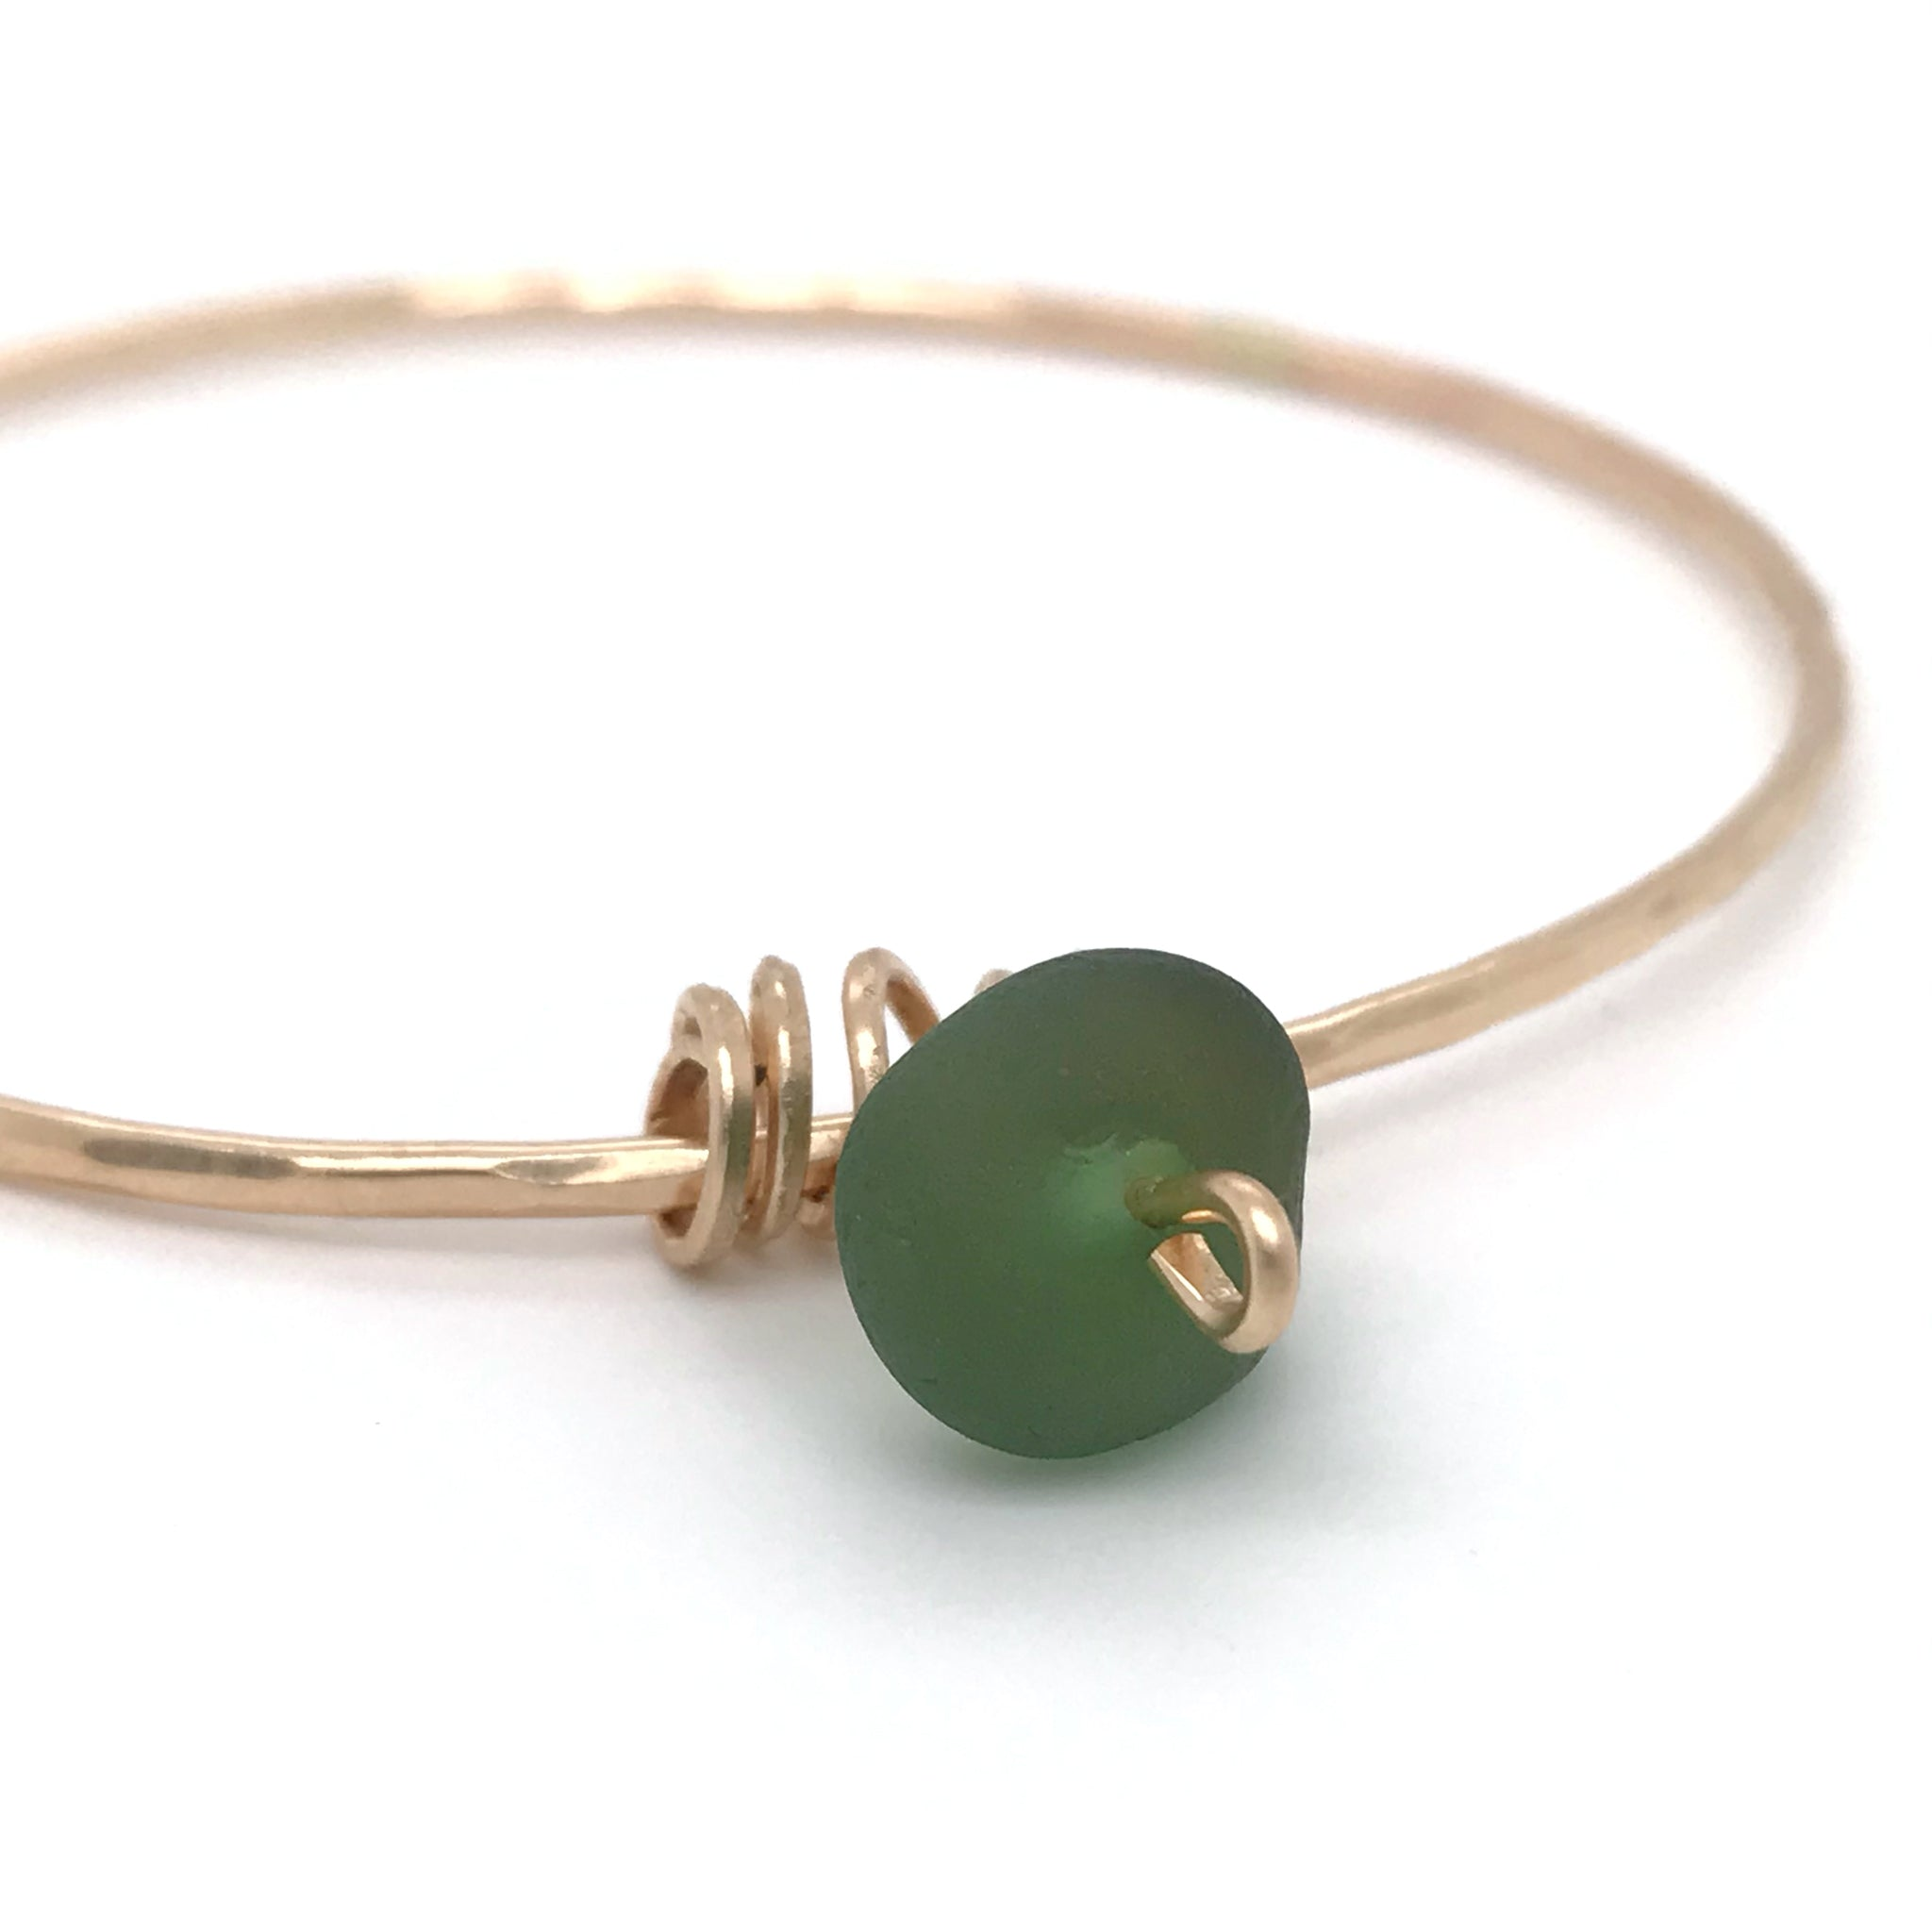 Green Seaglass on gold Bangle  - kriket broadhurst jewelry